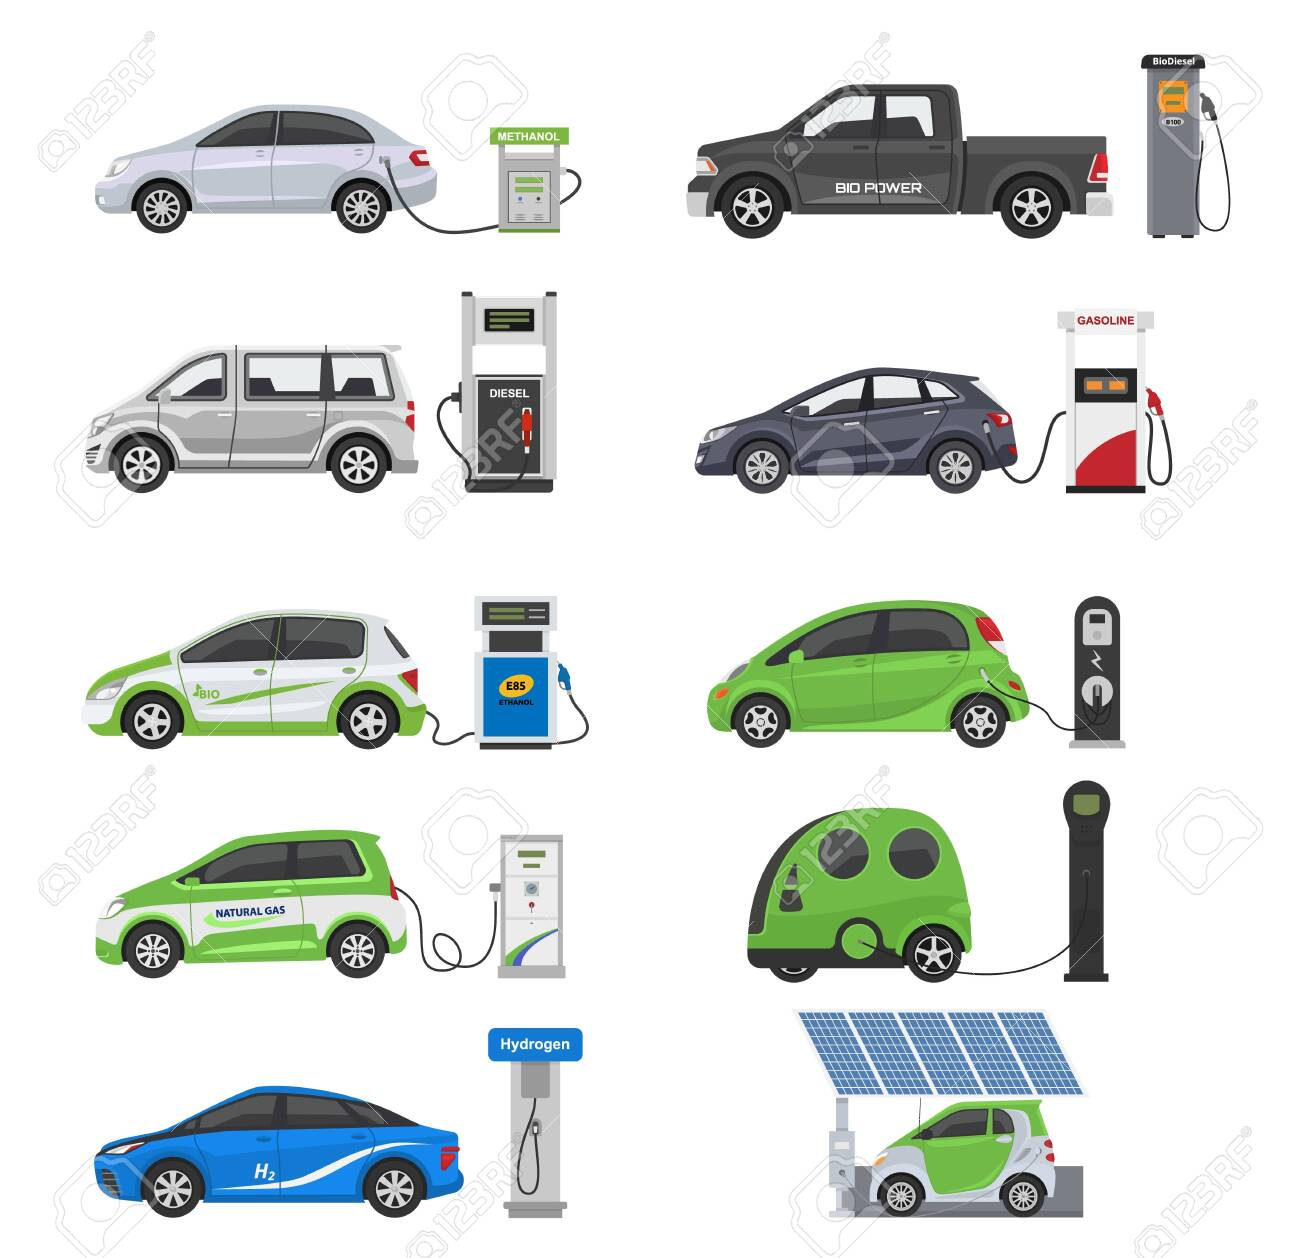 Fuel alternative vehicle vector team-car or gas-truck and solar-van or gasoline electricity station illustration set of bio-ethanol and hydrogen electric-car, isolated on white background - 132388969